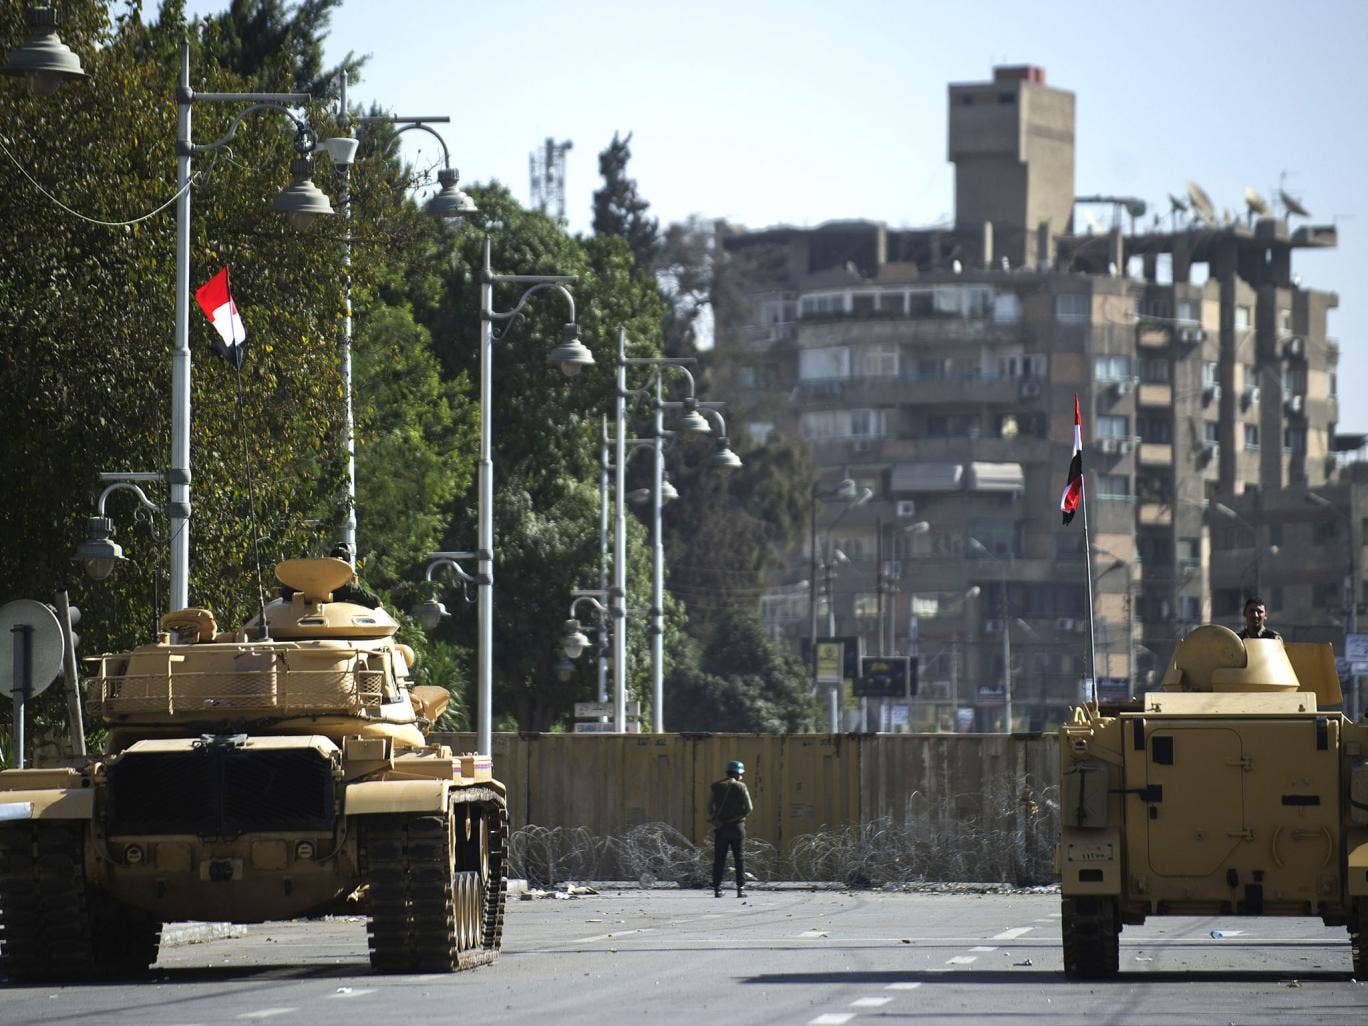 Tanks outside the presidential palace in Egypt